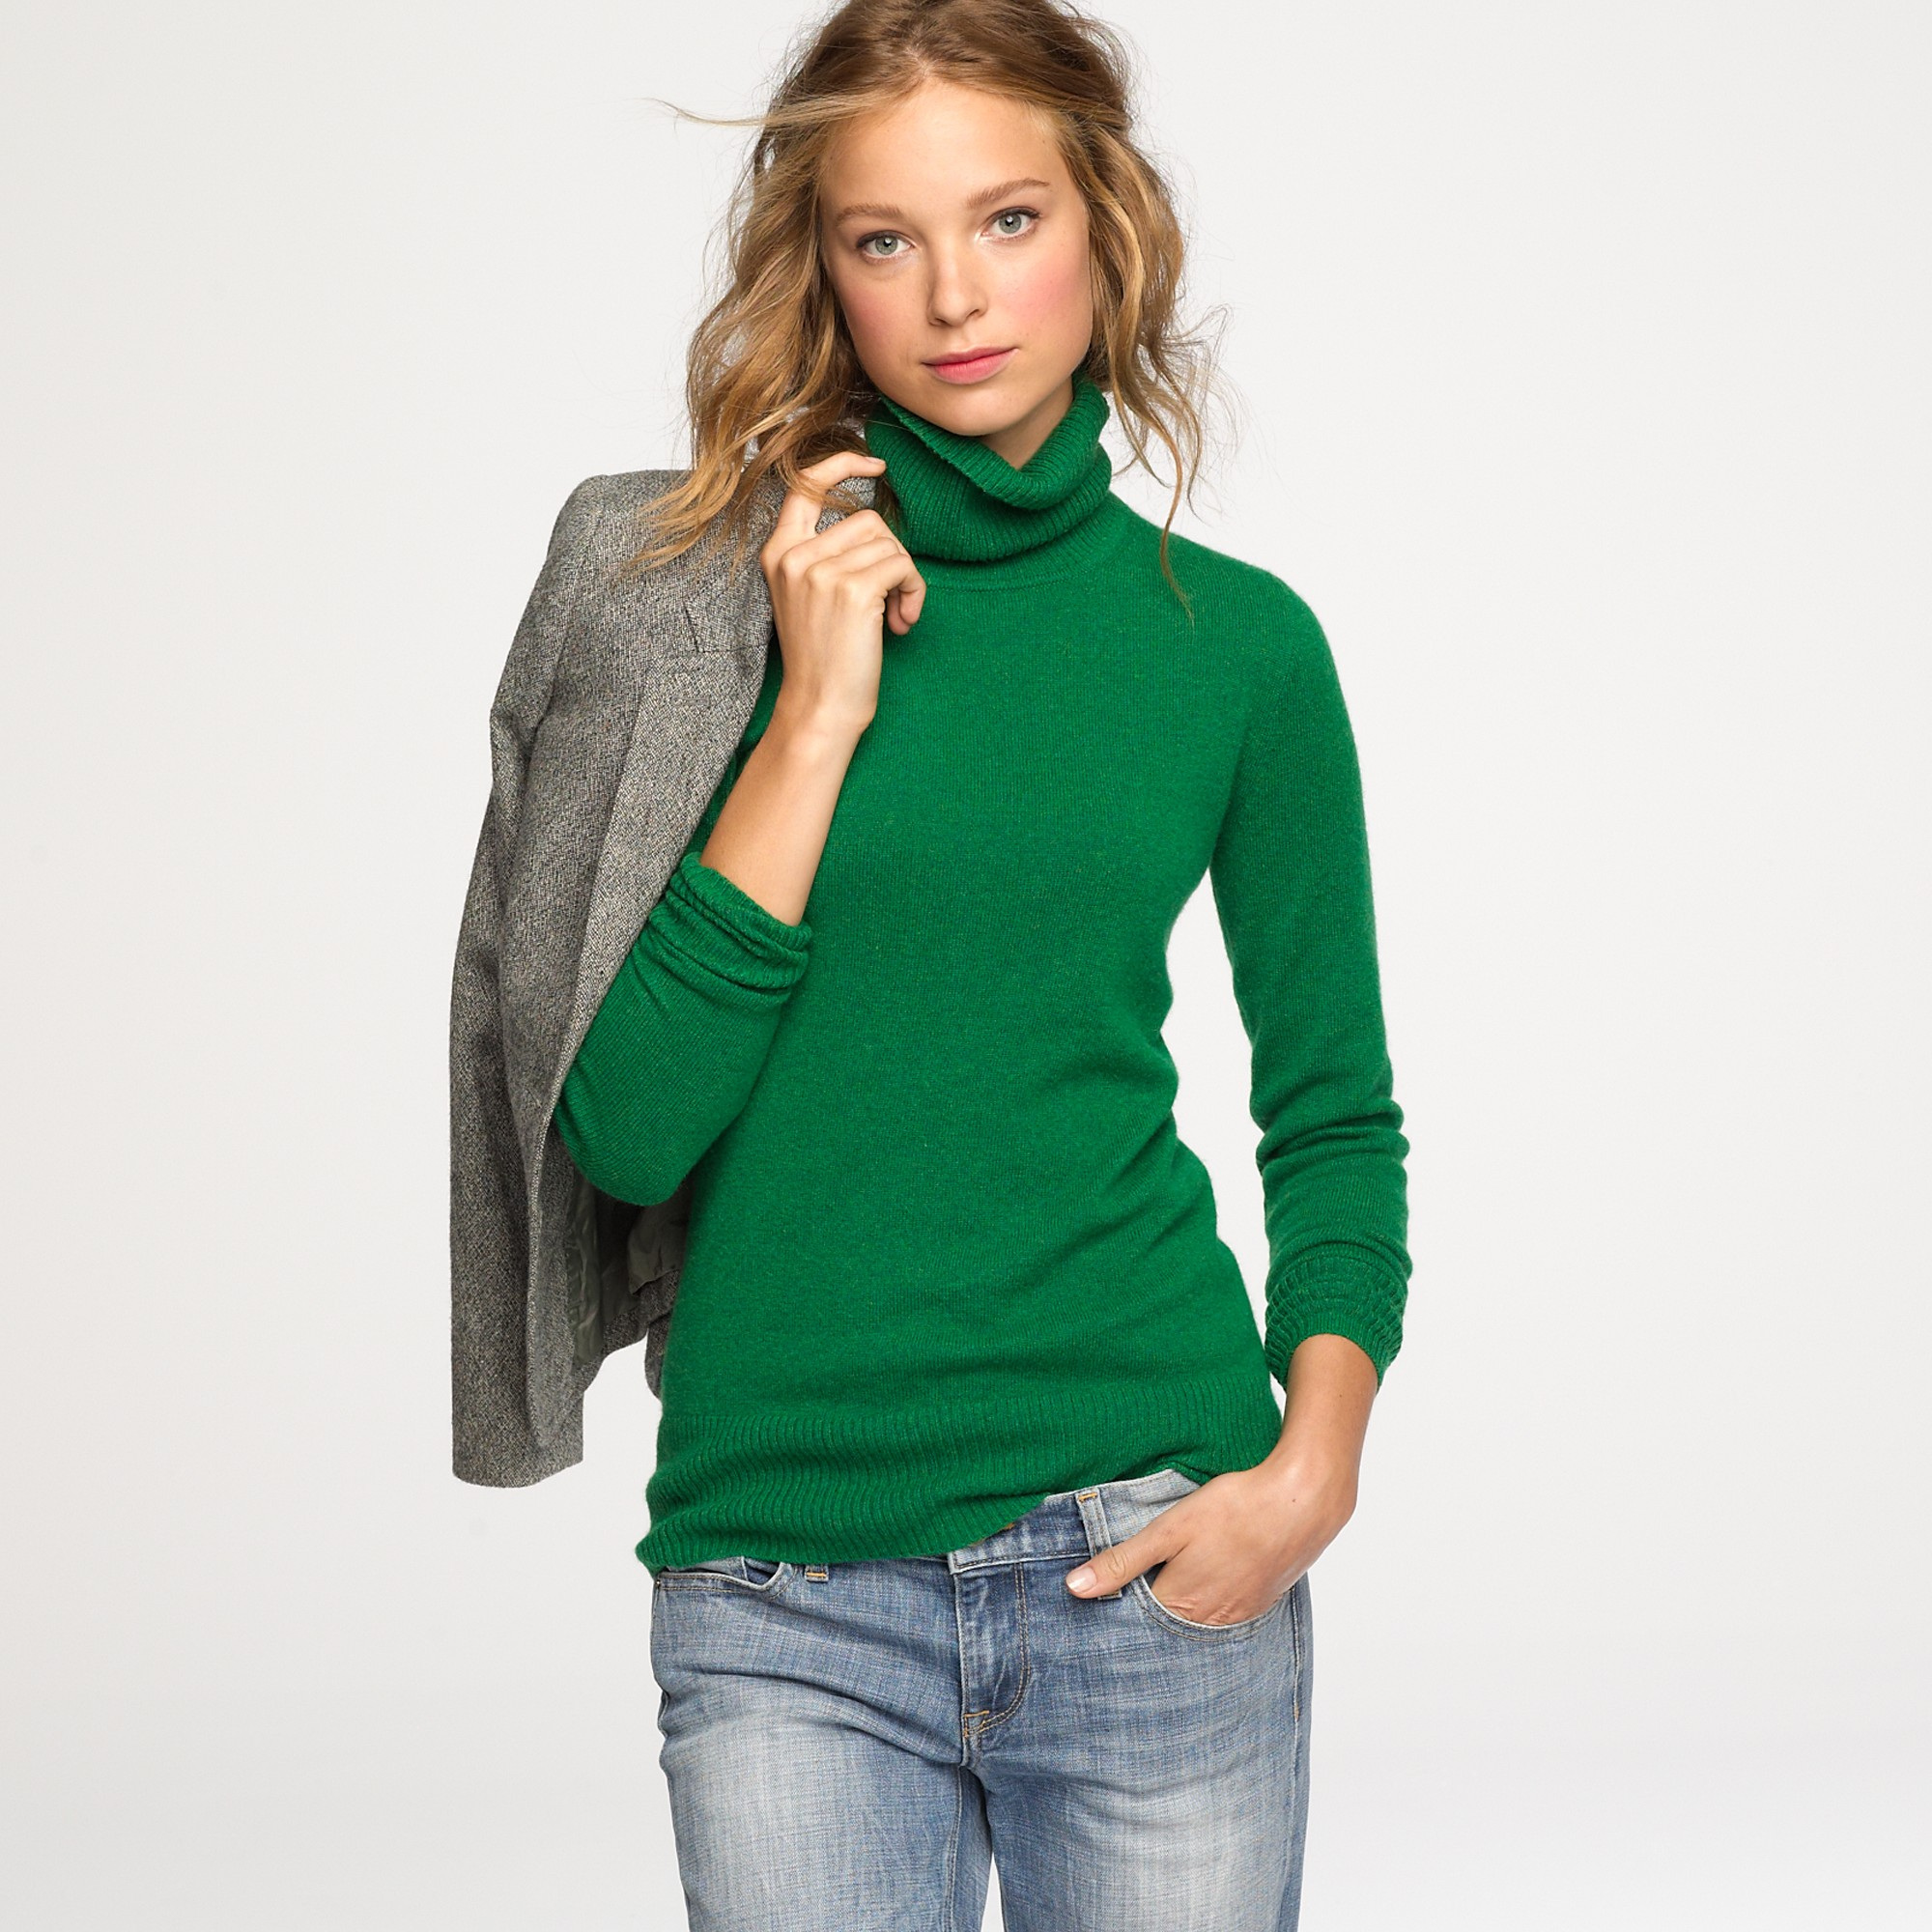 Enjoy free shipping and easy returns every day at Kohl's. Find great deals on Womens Turtleneck Tops at Kohl's today!